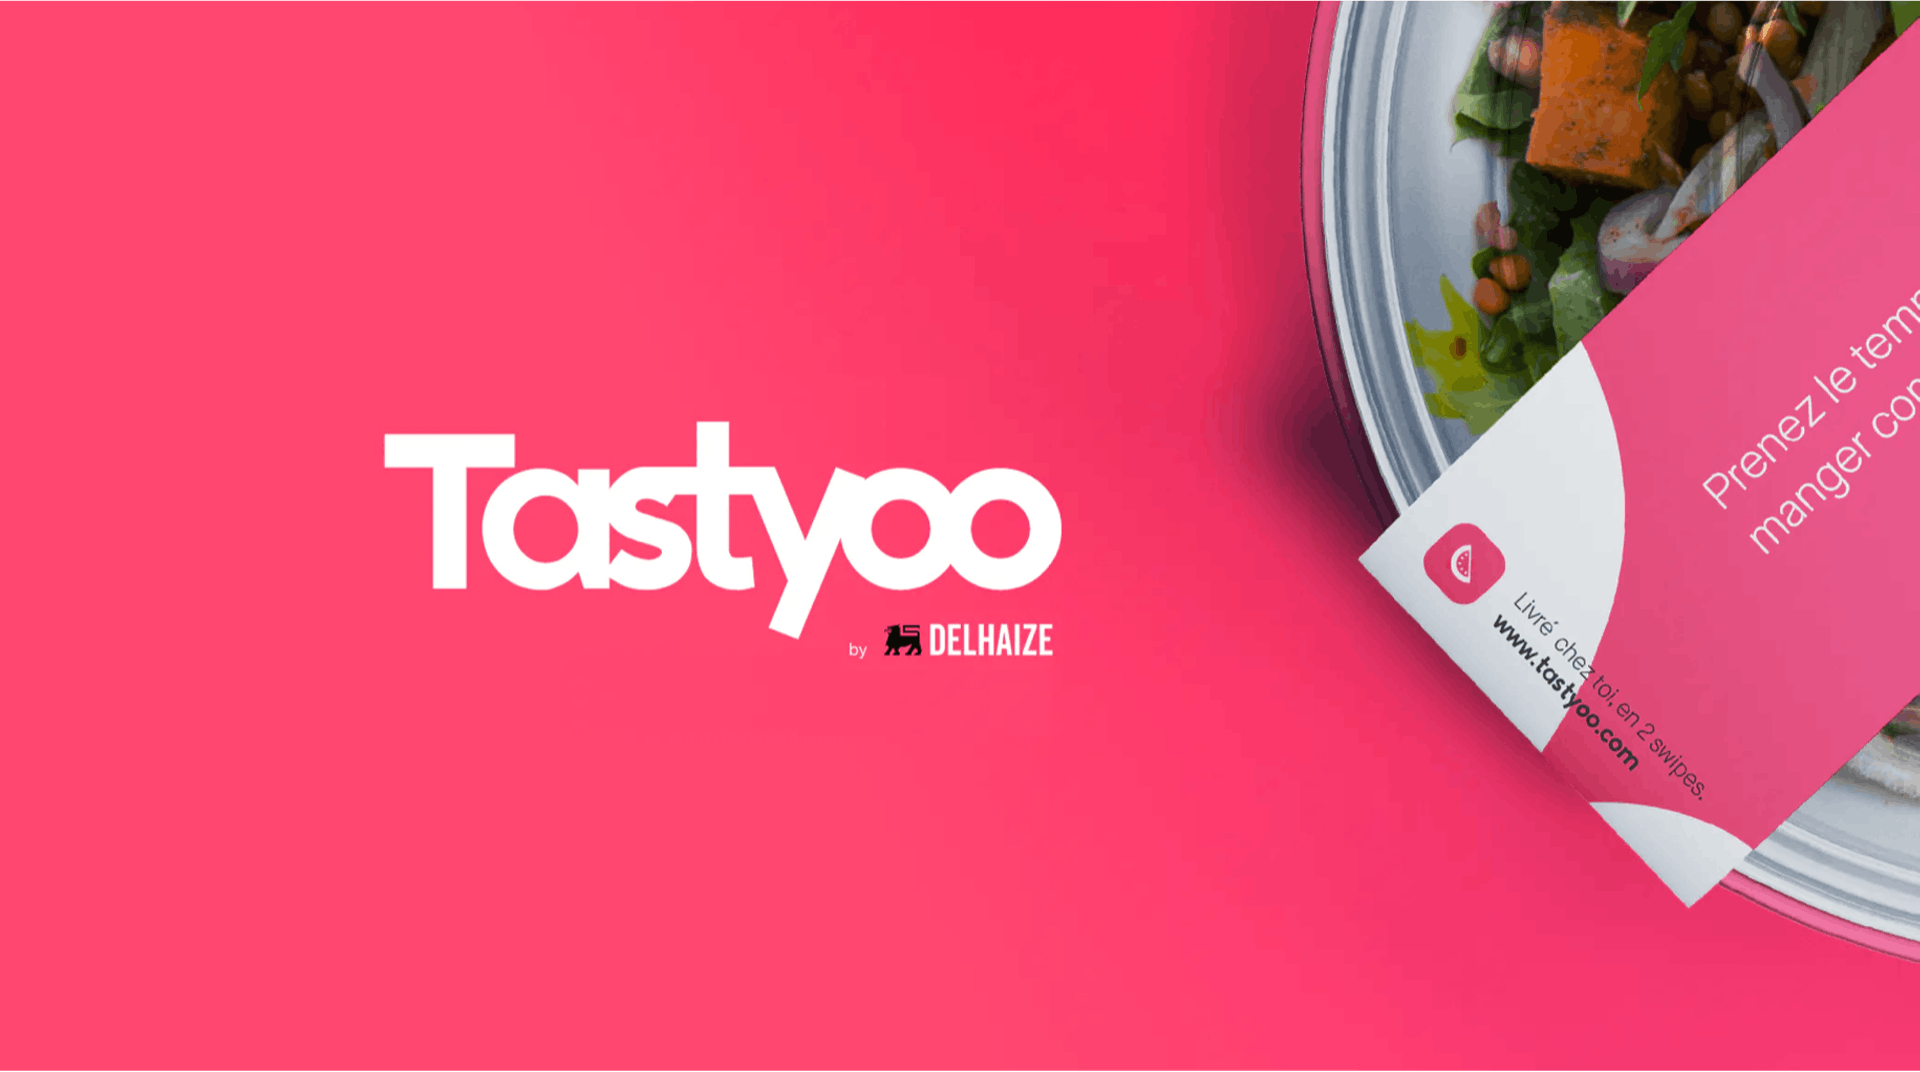 Tastyoo, a new  foodtech brand